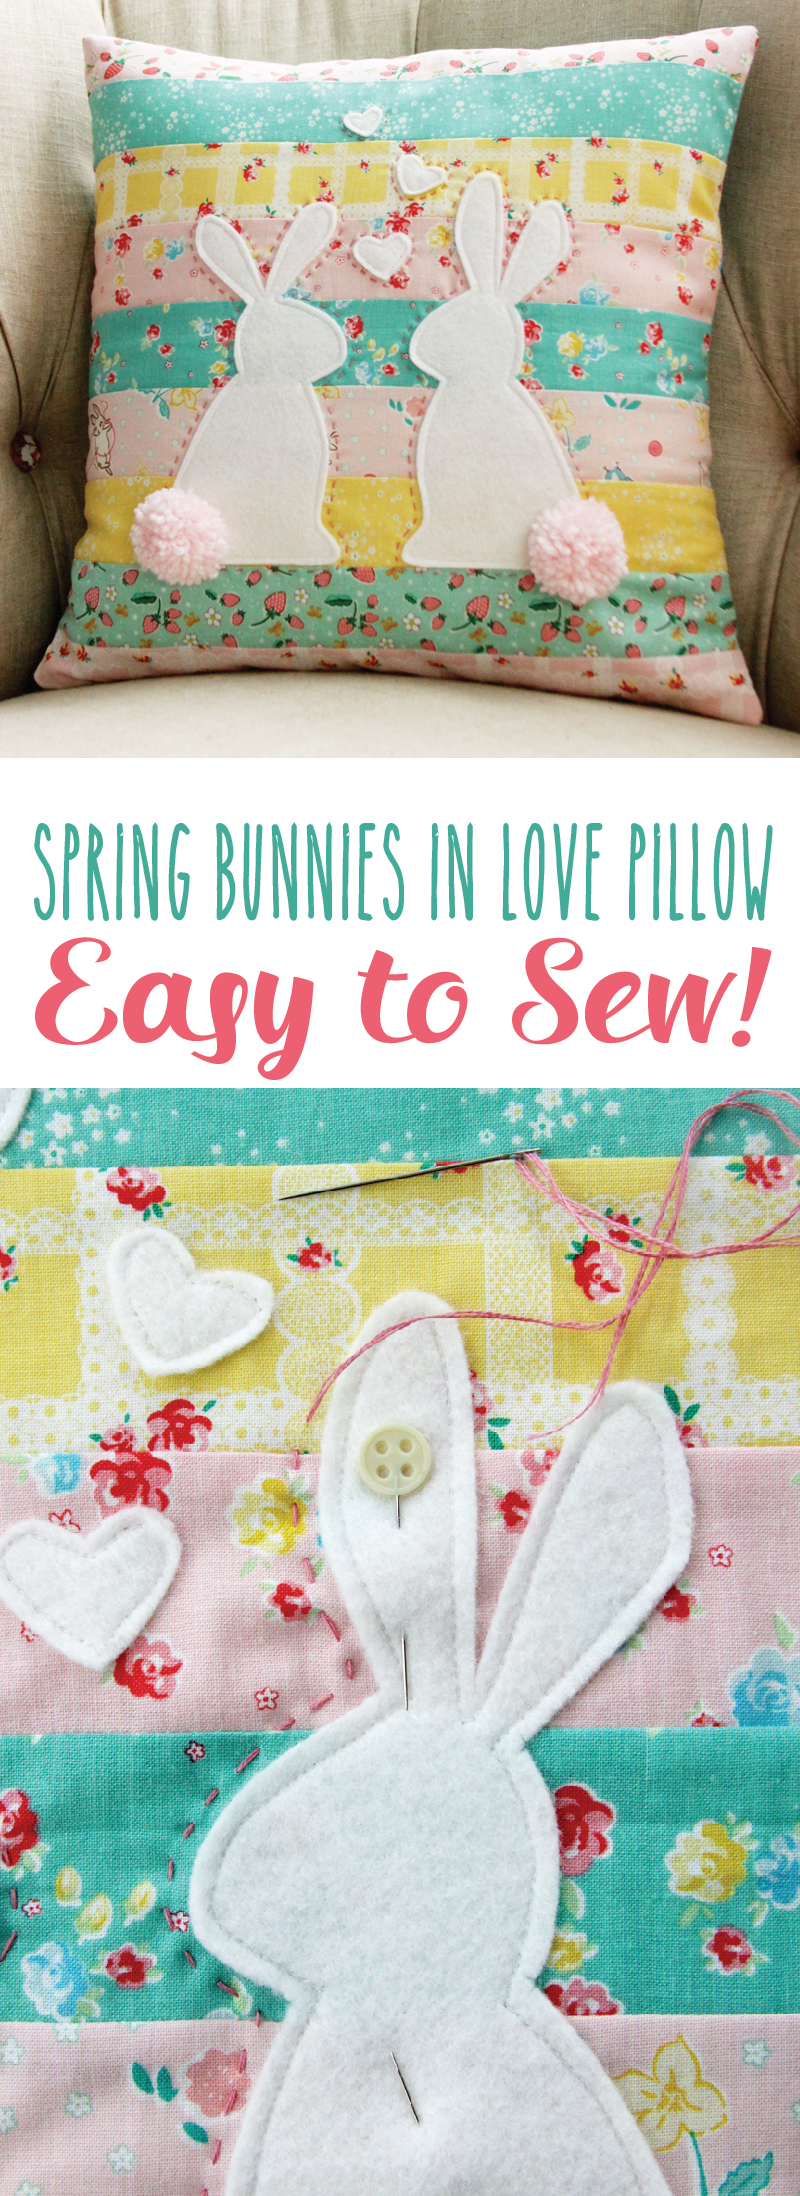 Spring Bunnies in Love Pillow